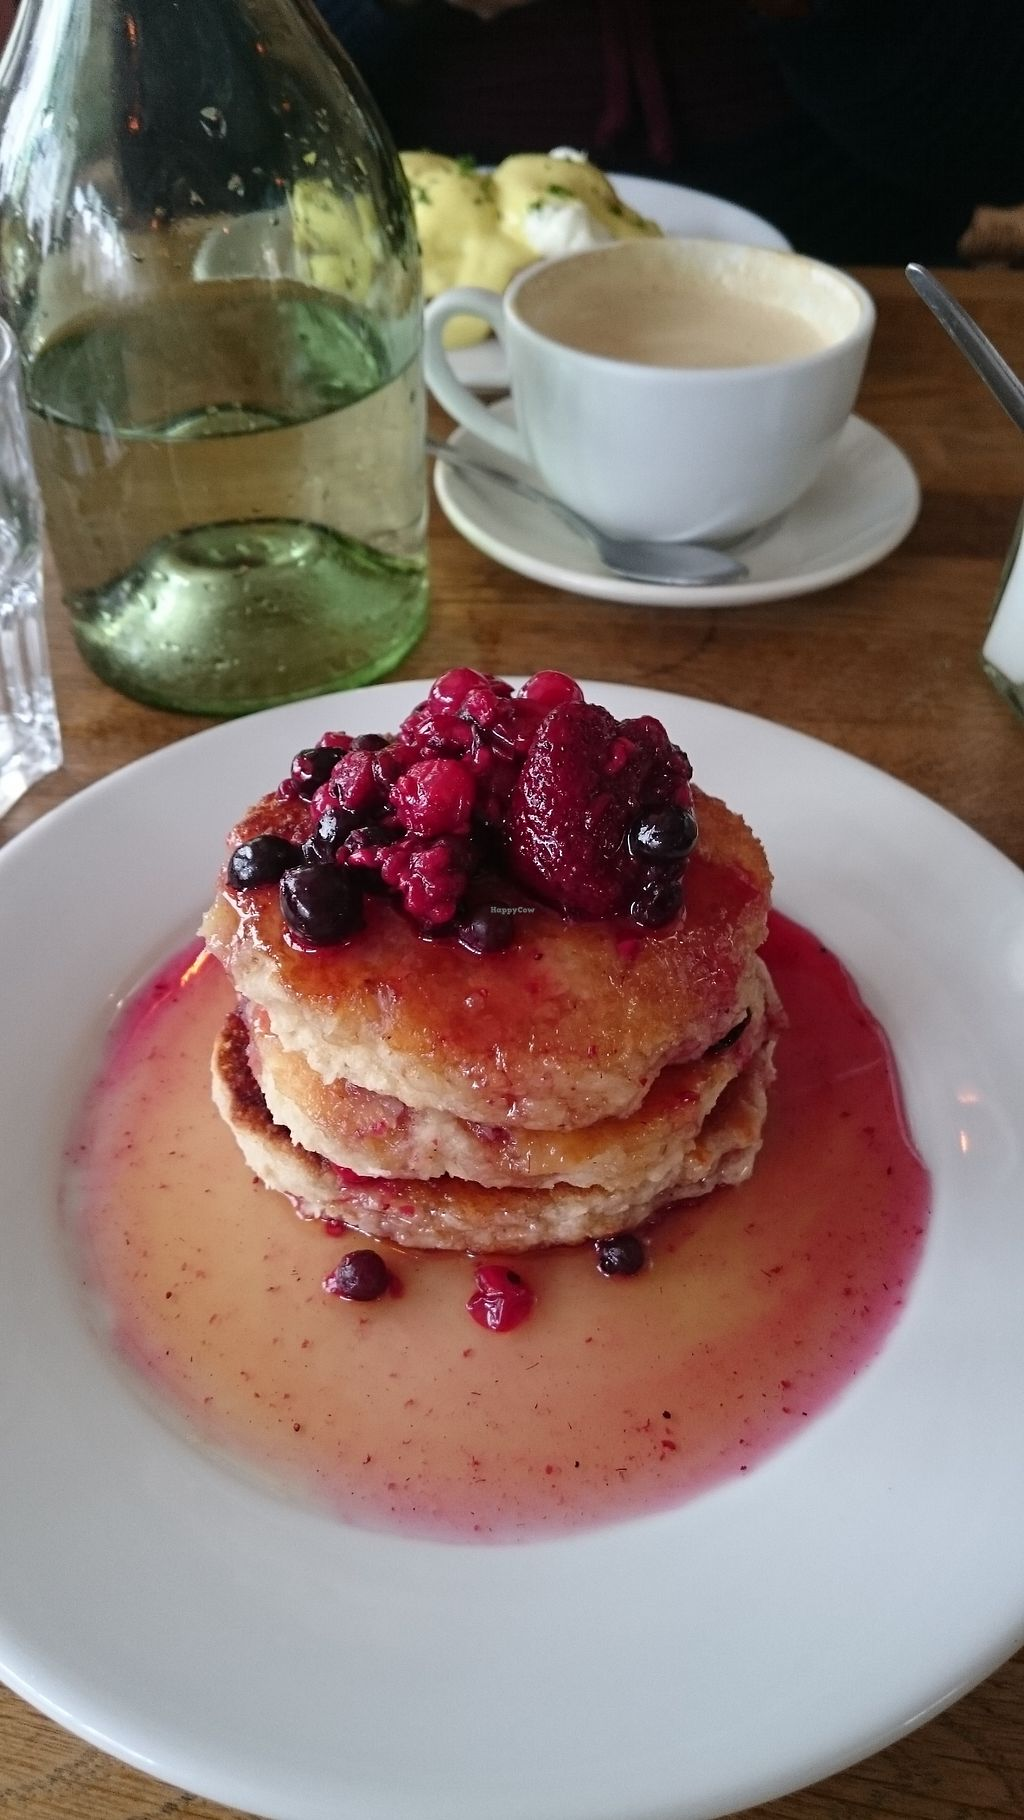 """Photo of The Handle Bar  by <a href=""""/members/profile/Layra"""">Layra</a> <br/>Vegan coconut pancakes with berries <br/> March 27, 2018  - <a href='/contact/abuse/image/104266/376912'>Report</a>"""